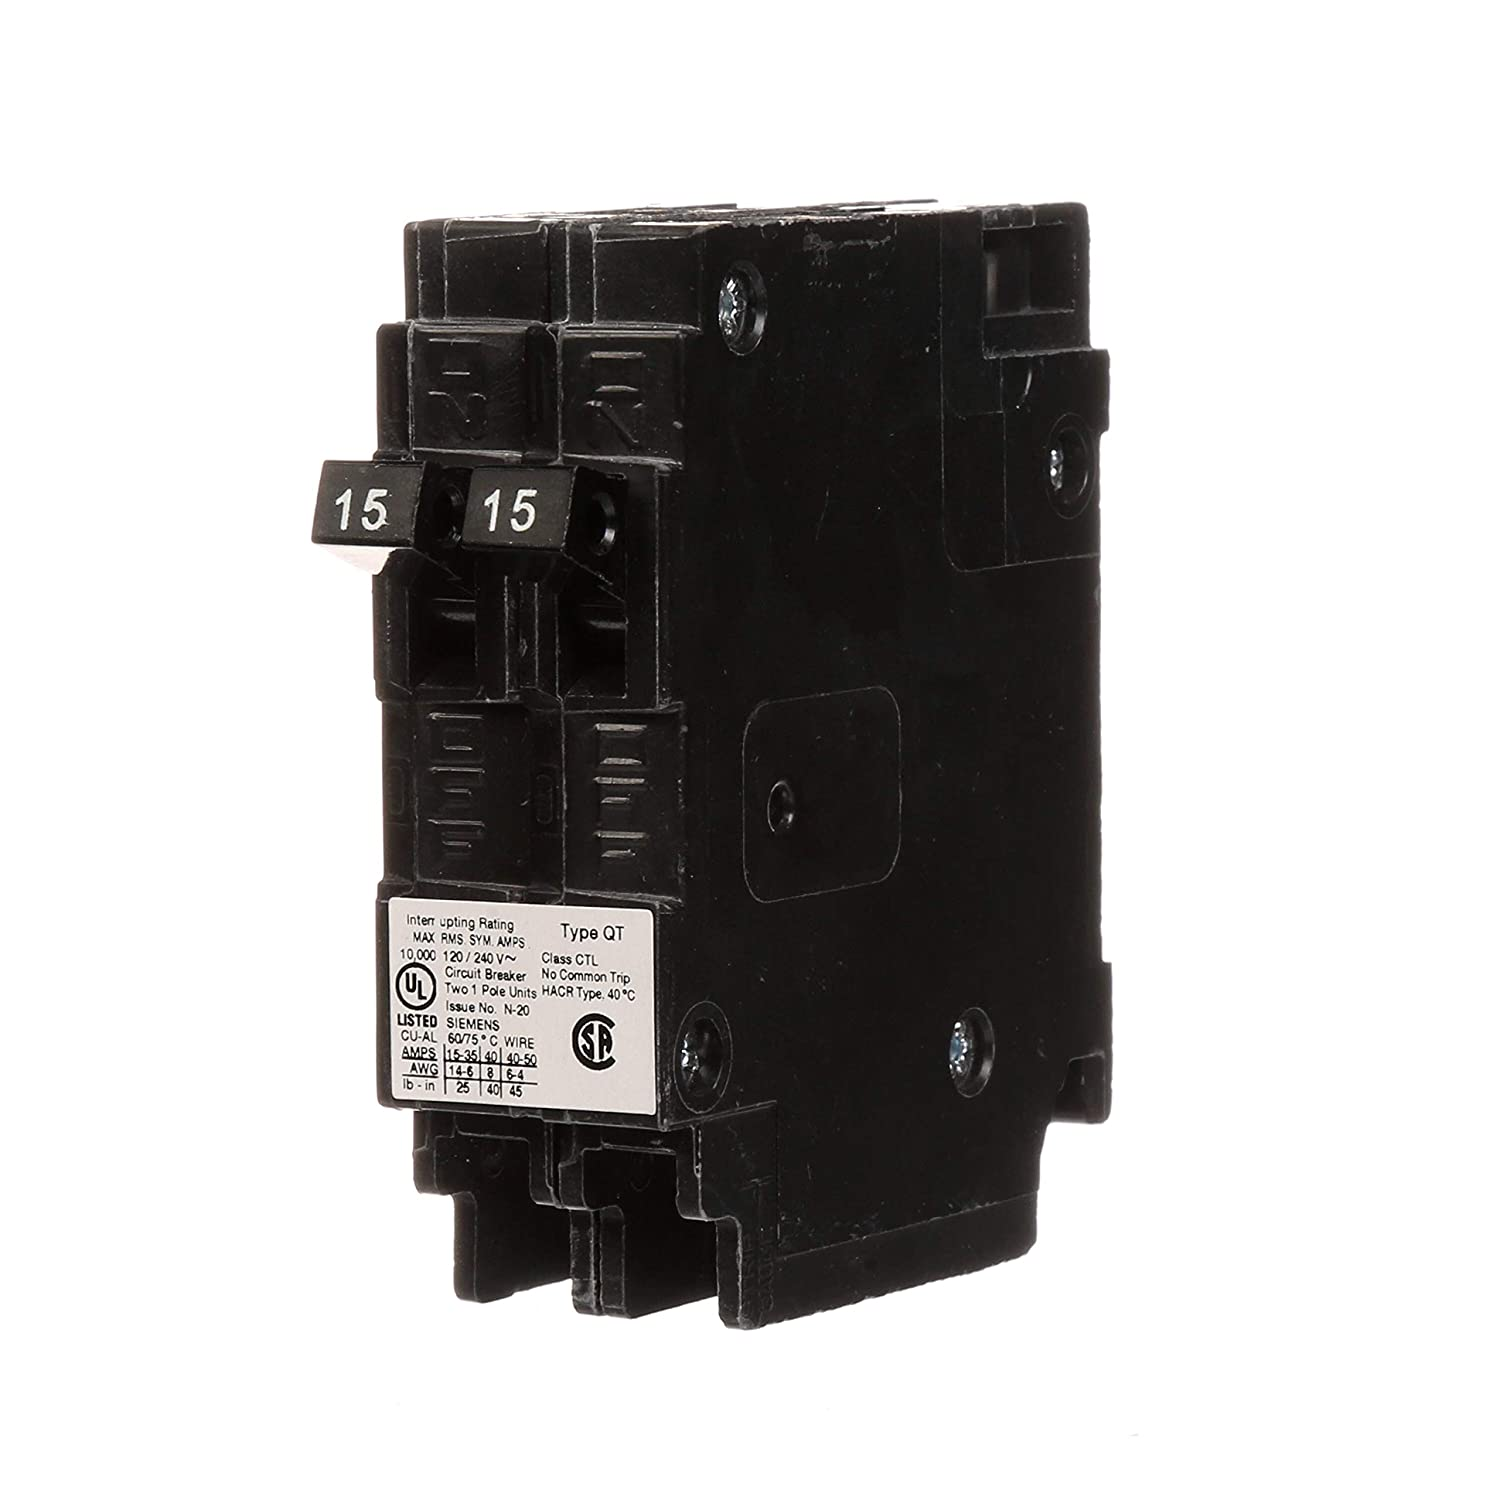 Siemens Q1515 Two 15 Amp Single Pole 120 Volt Circuit Breakers For Miniature Breaker Wiring Diagram Use Only Where Type Qt Are Allowed